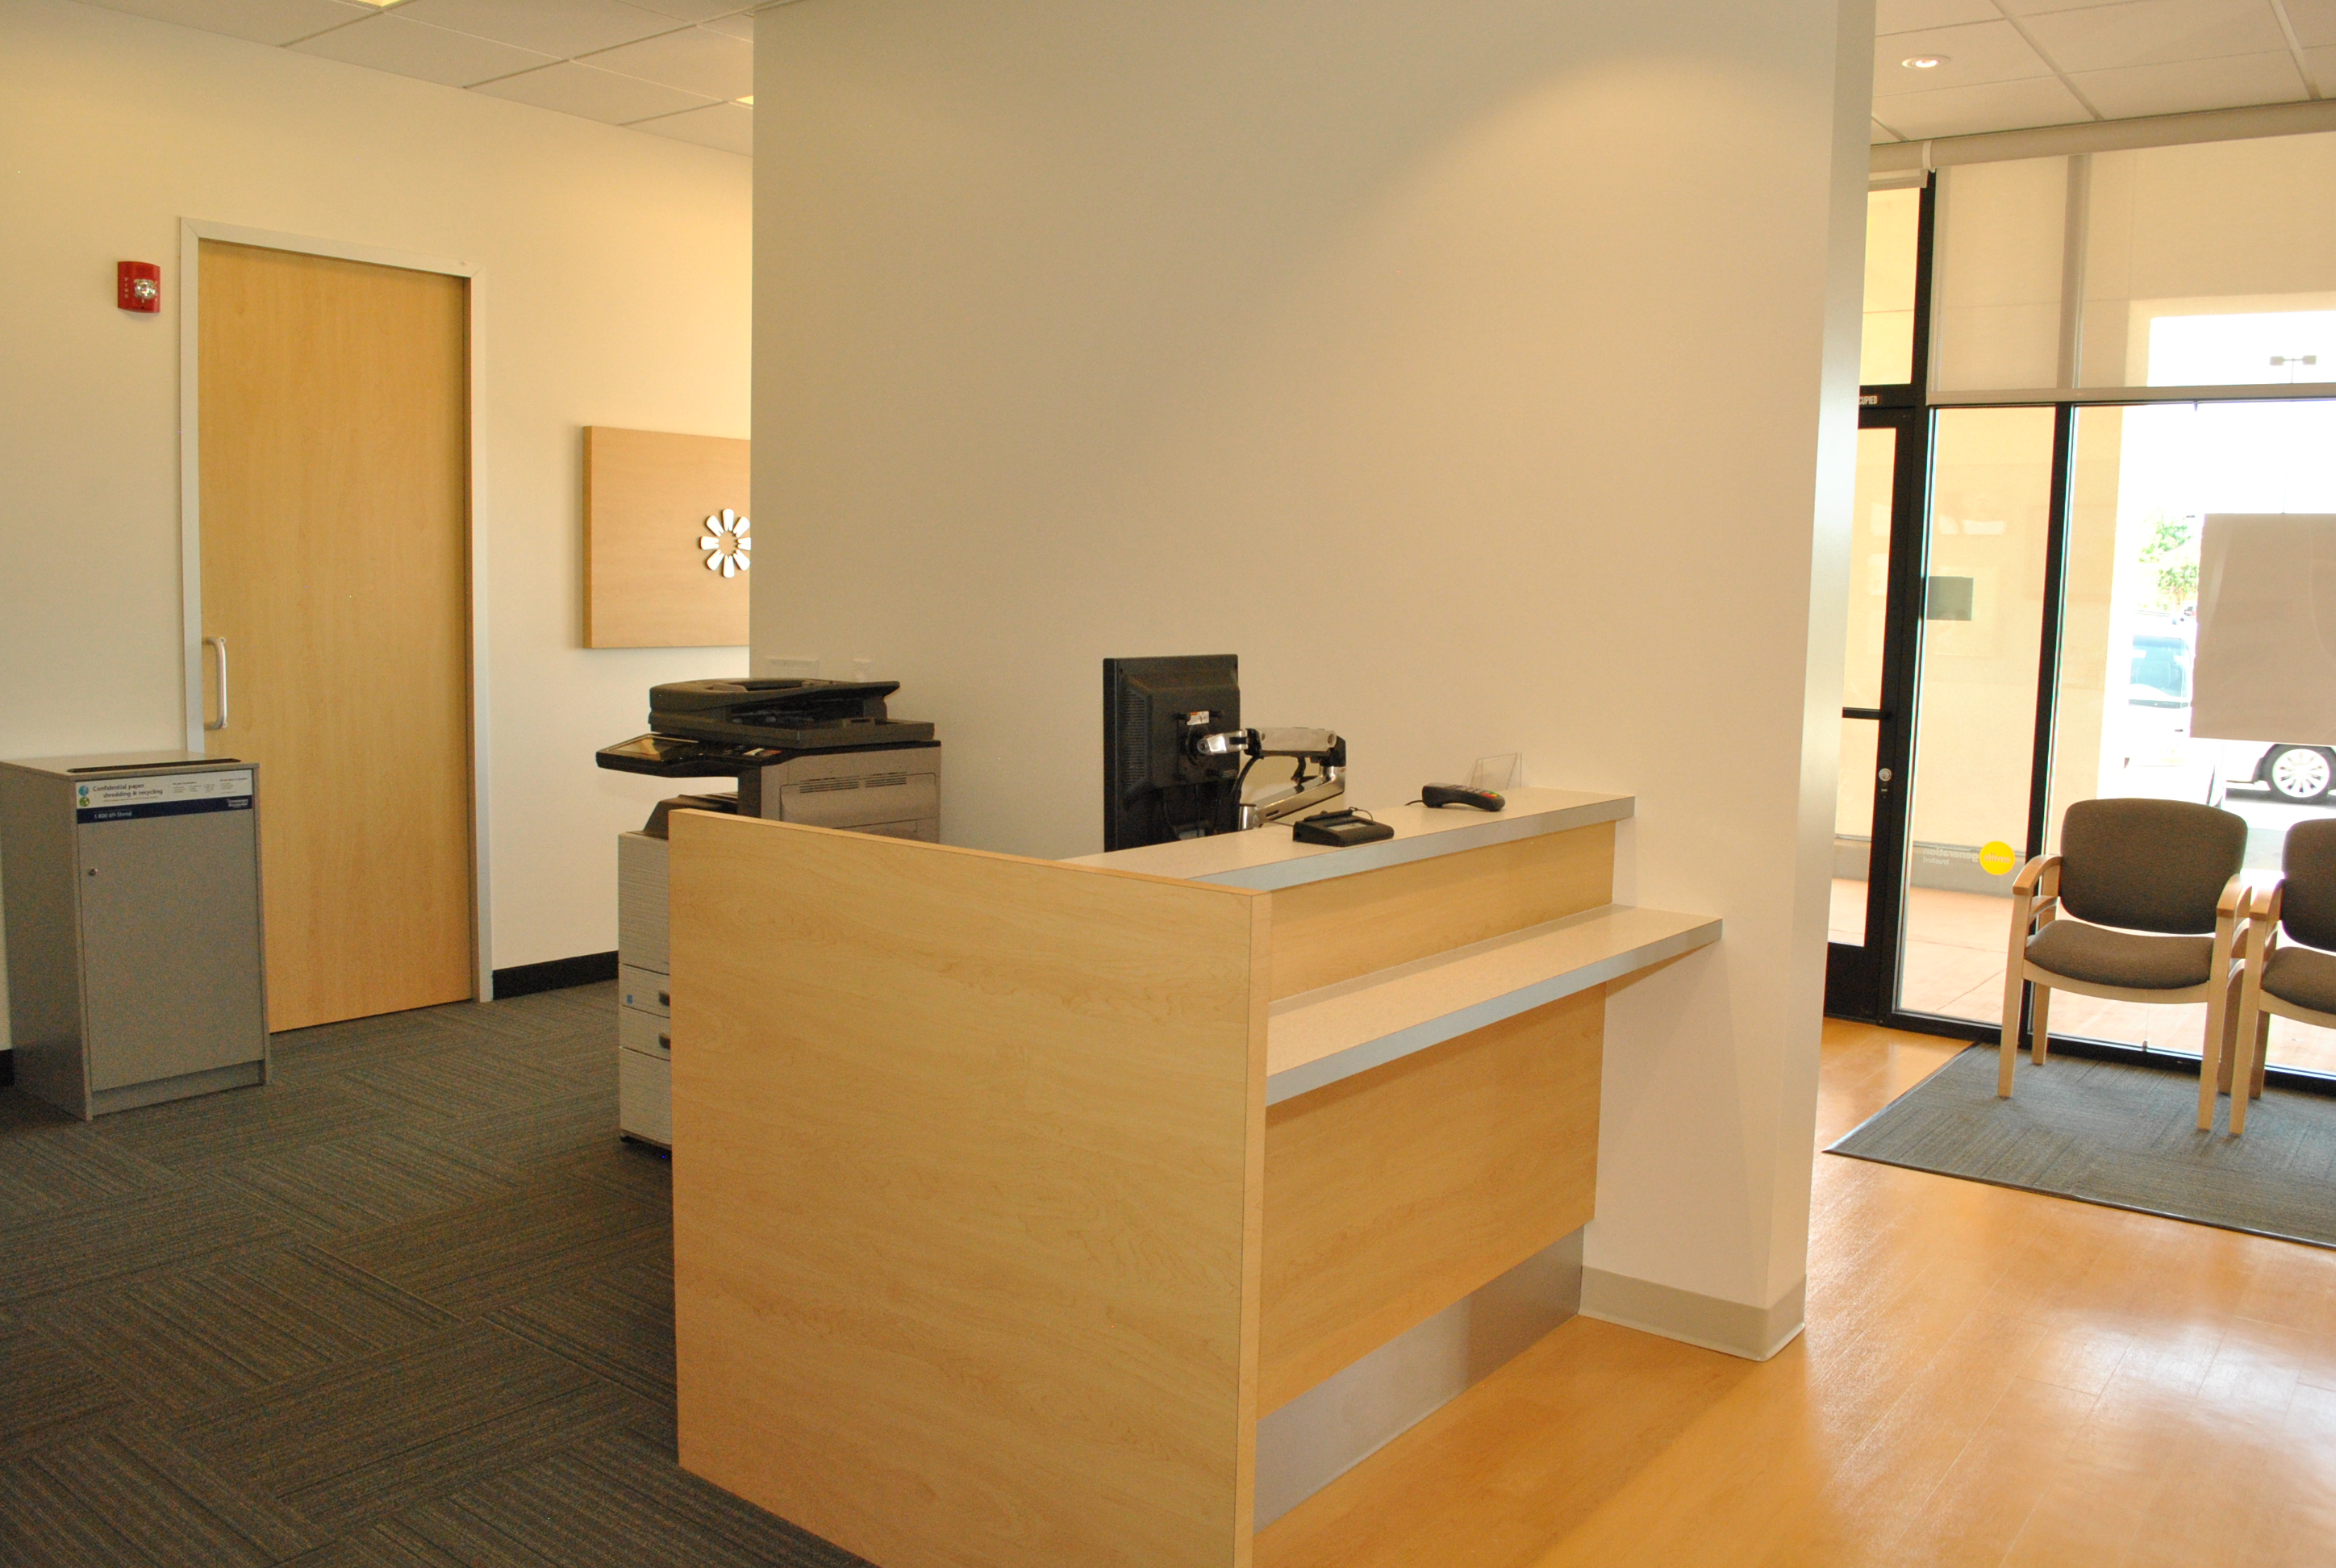 Clovis Crossing Dental Group and Orthodontics image 6